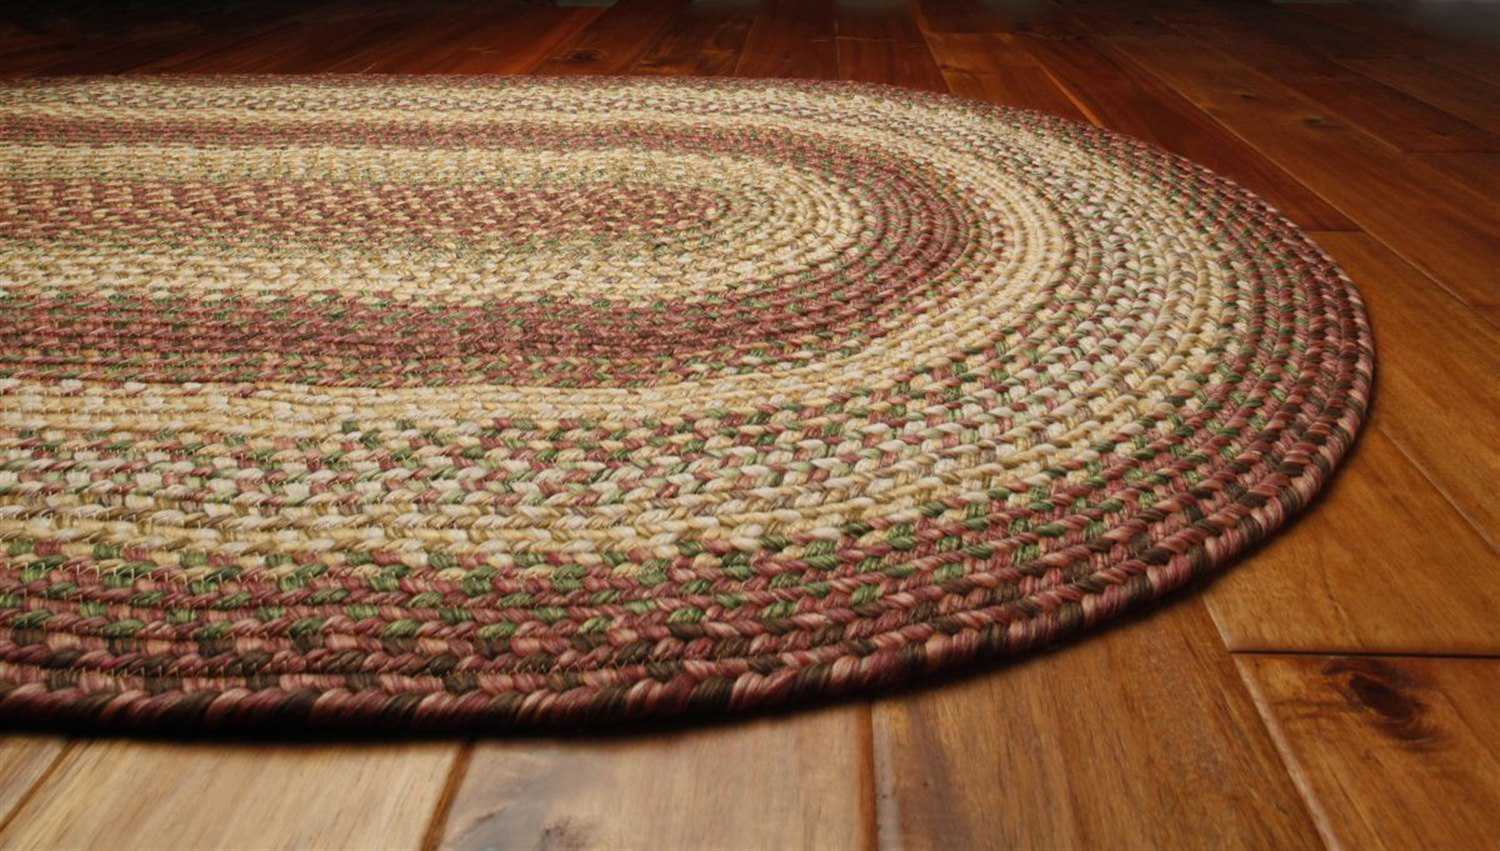 Homespice decor ultra durable braided oval red area rug for Braided rugs